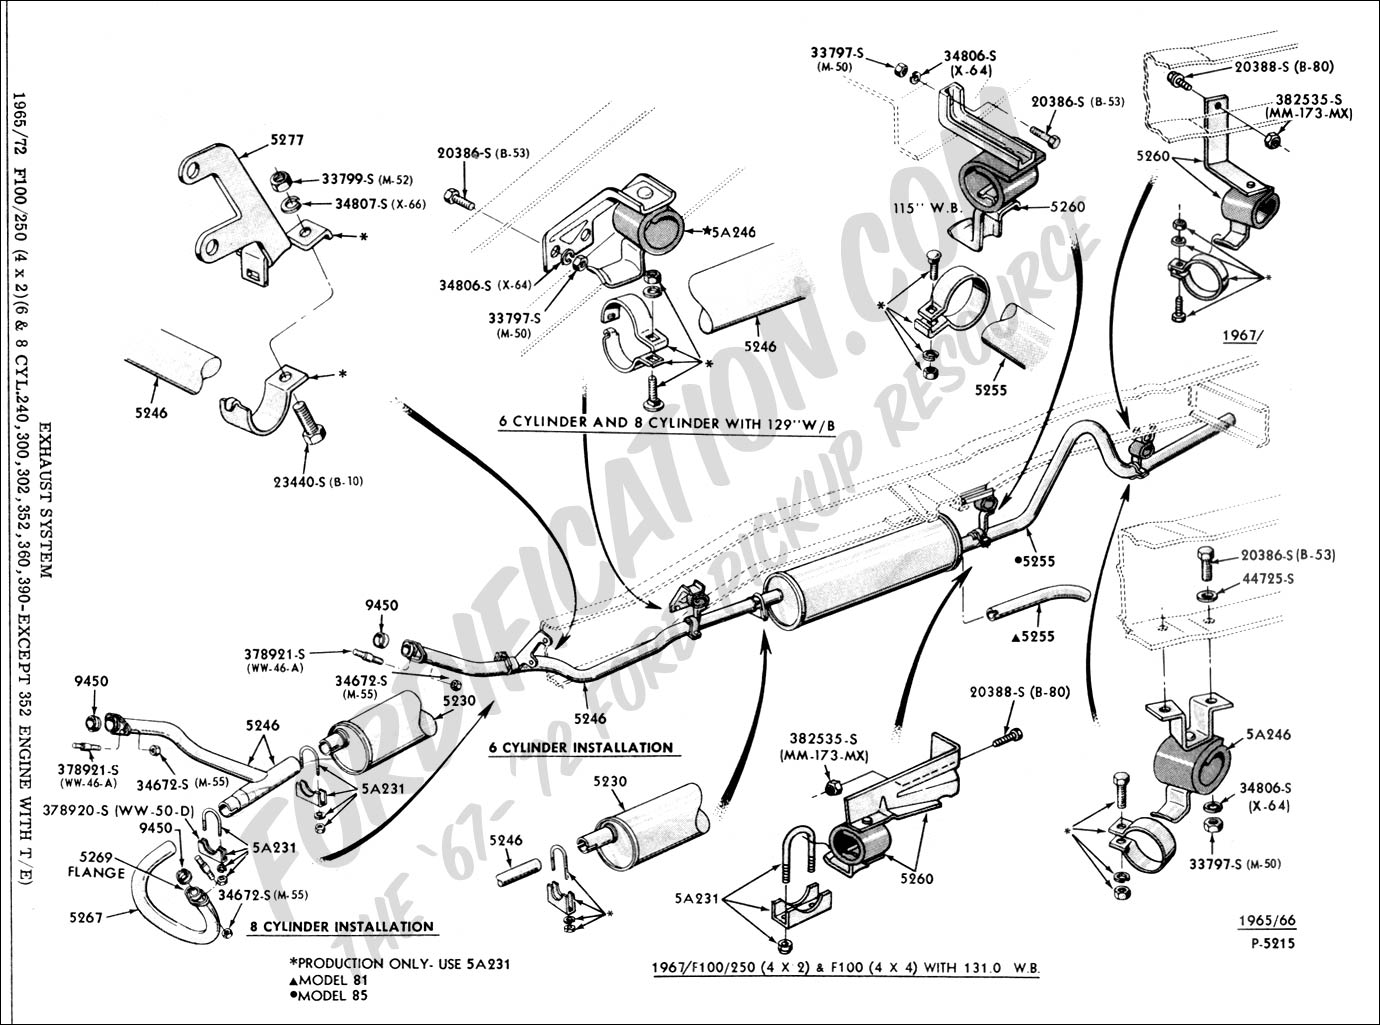 84 dodge truck ignition wiring diagram